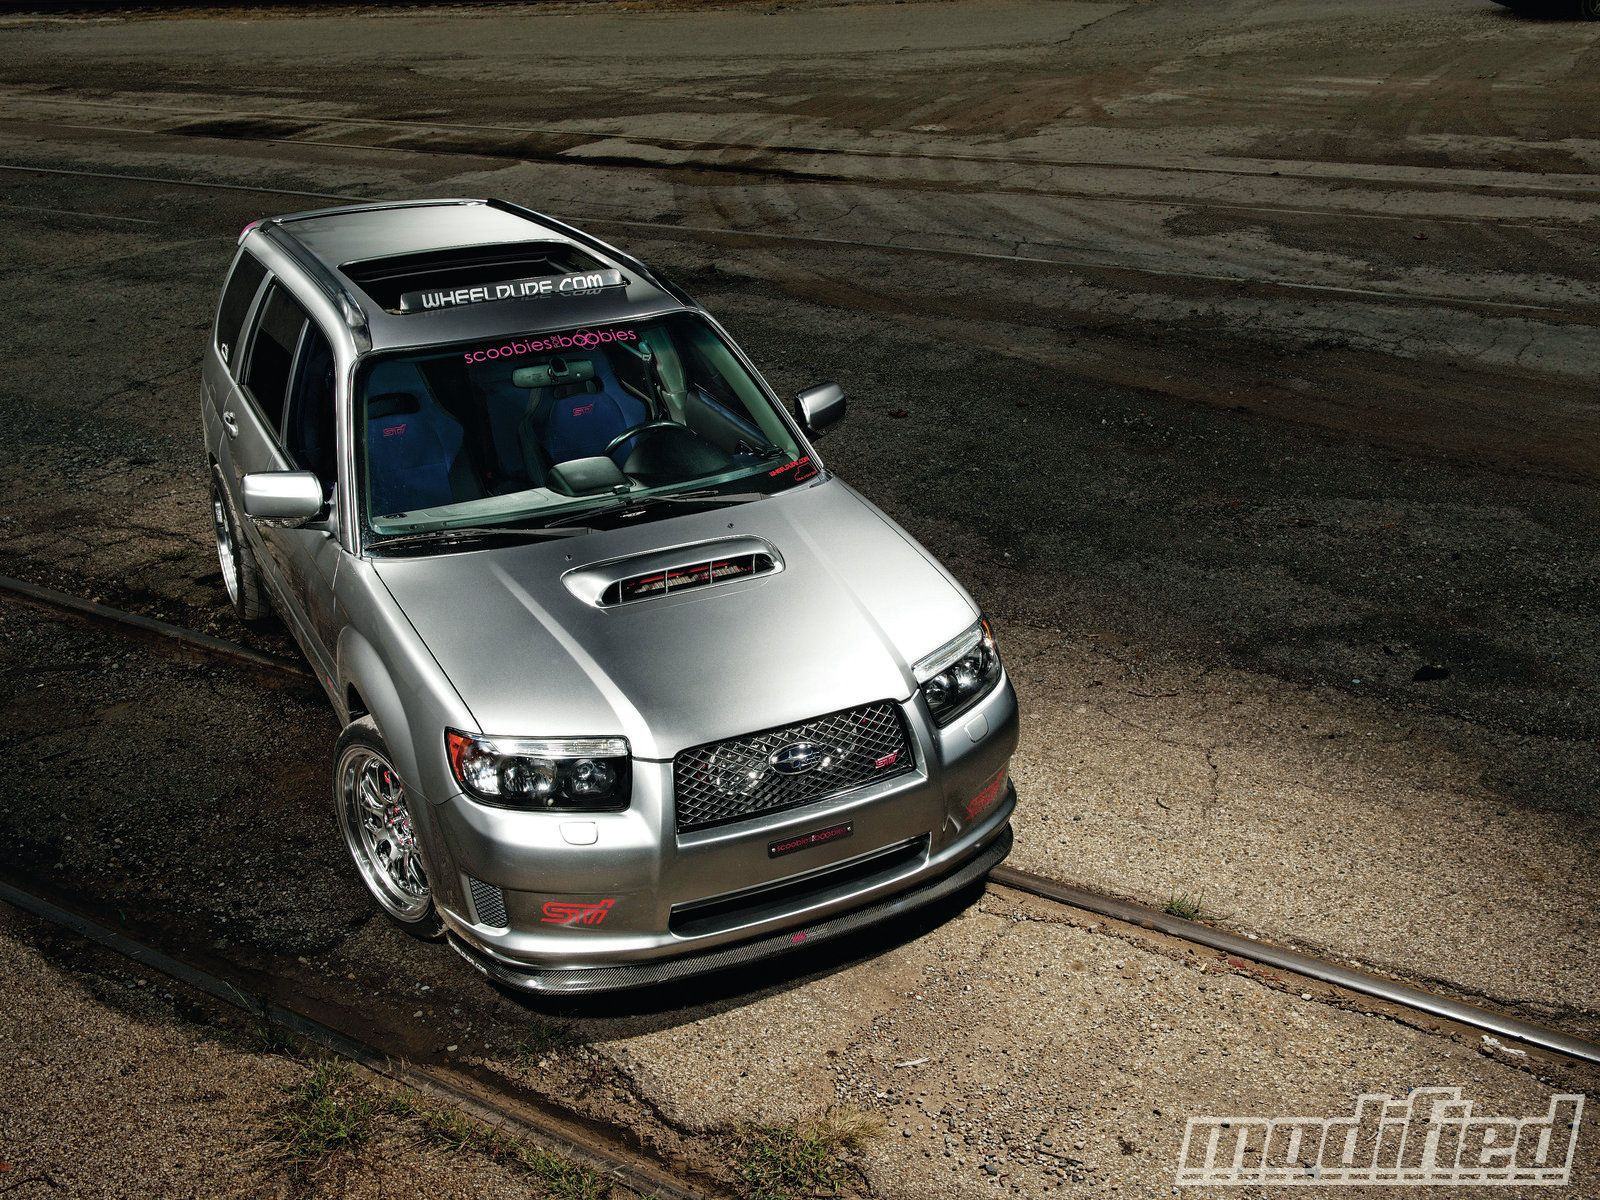 Xt666 genuine jdm sti forester in australia page 9 subaru what my forester xt dreams that it will become someday vanachro Gallery